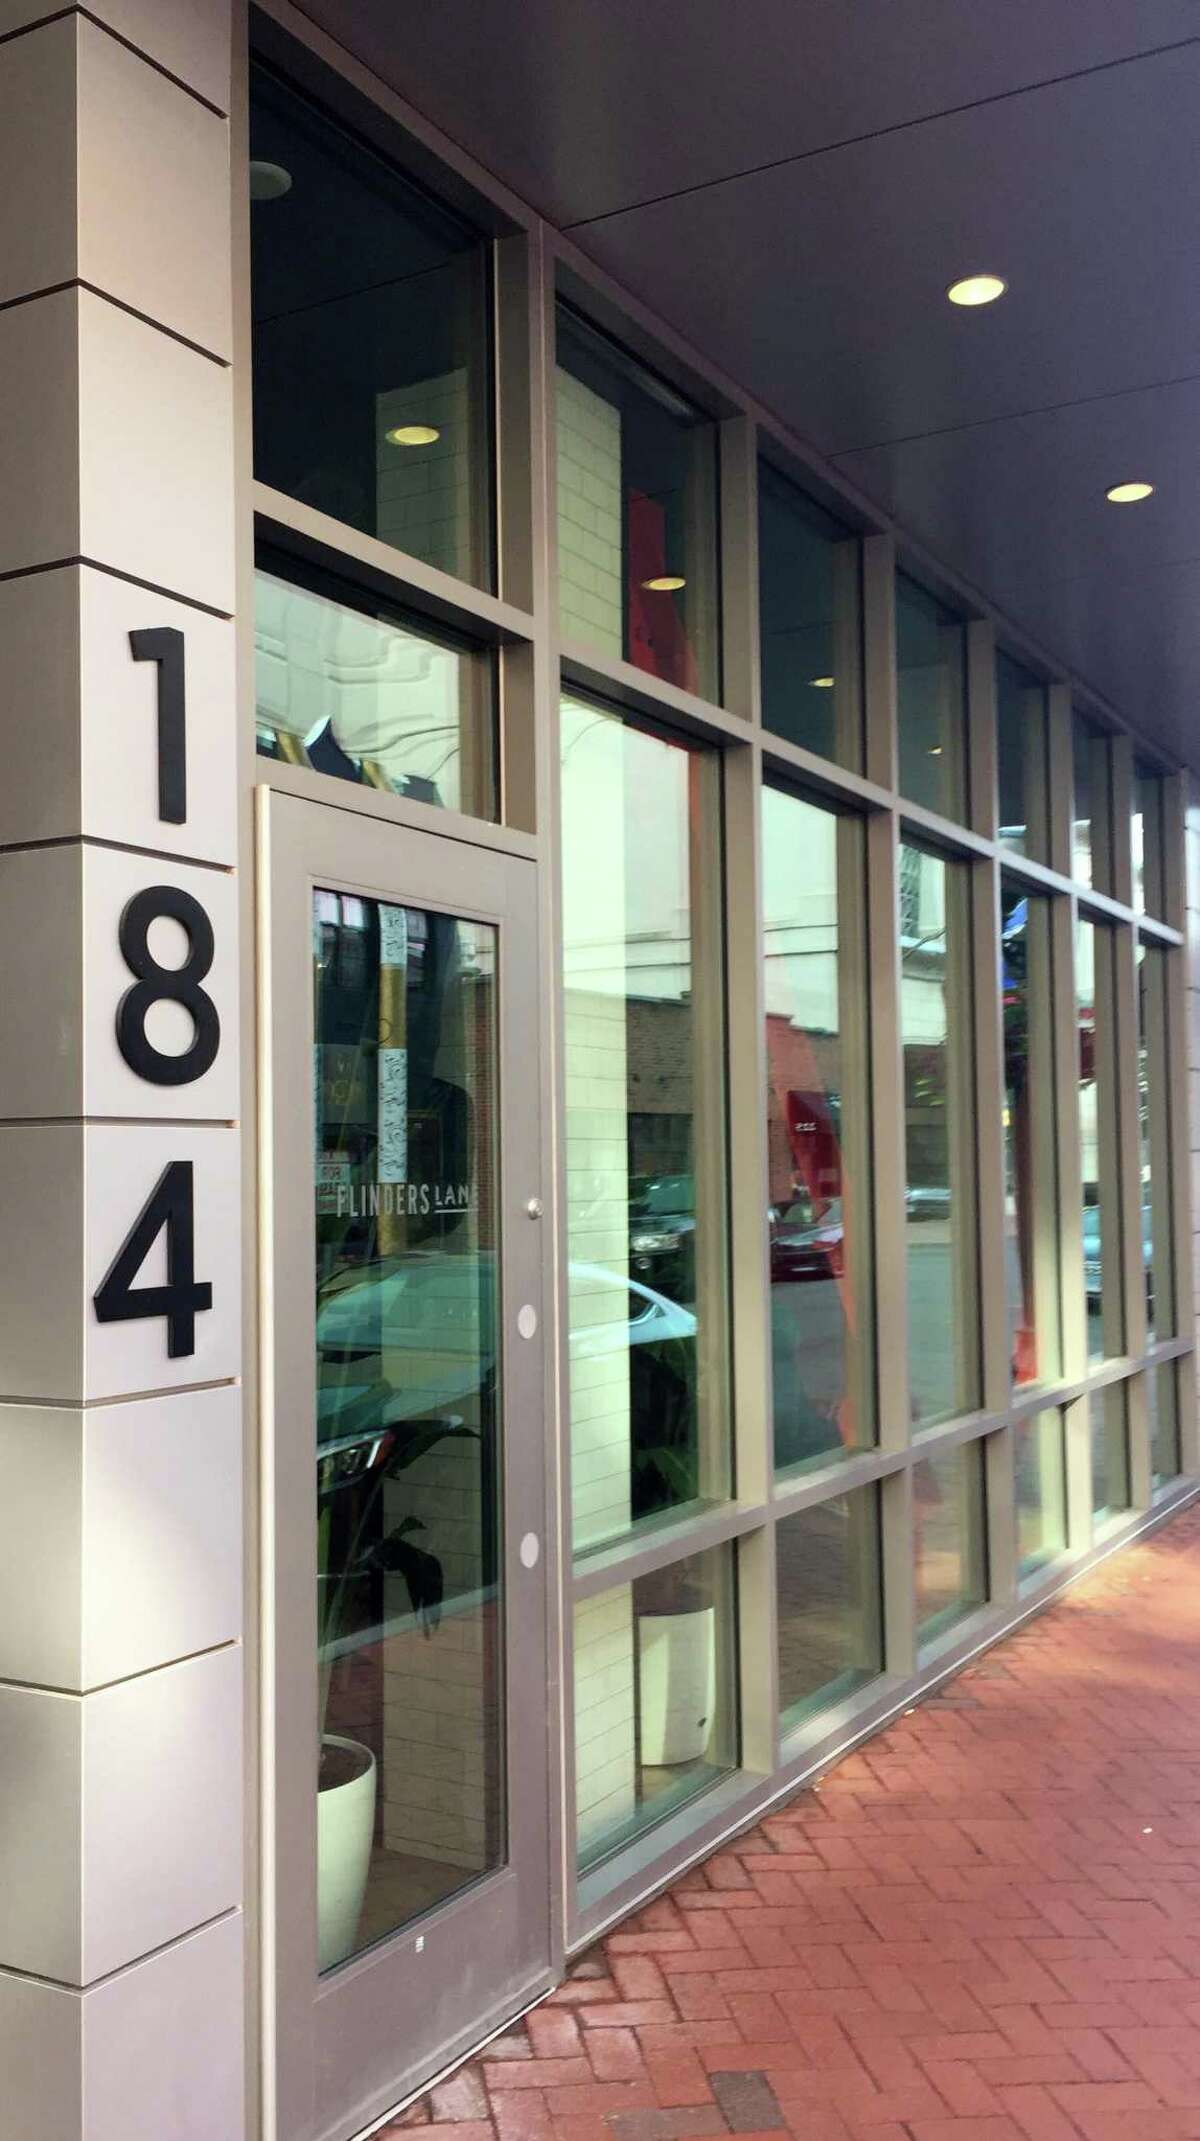 Flinders Lane has opened at 184 Summer St., in downtown Stamford, Conn.